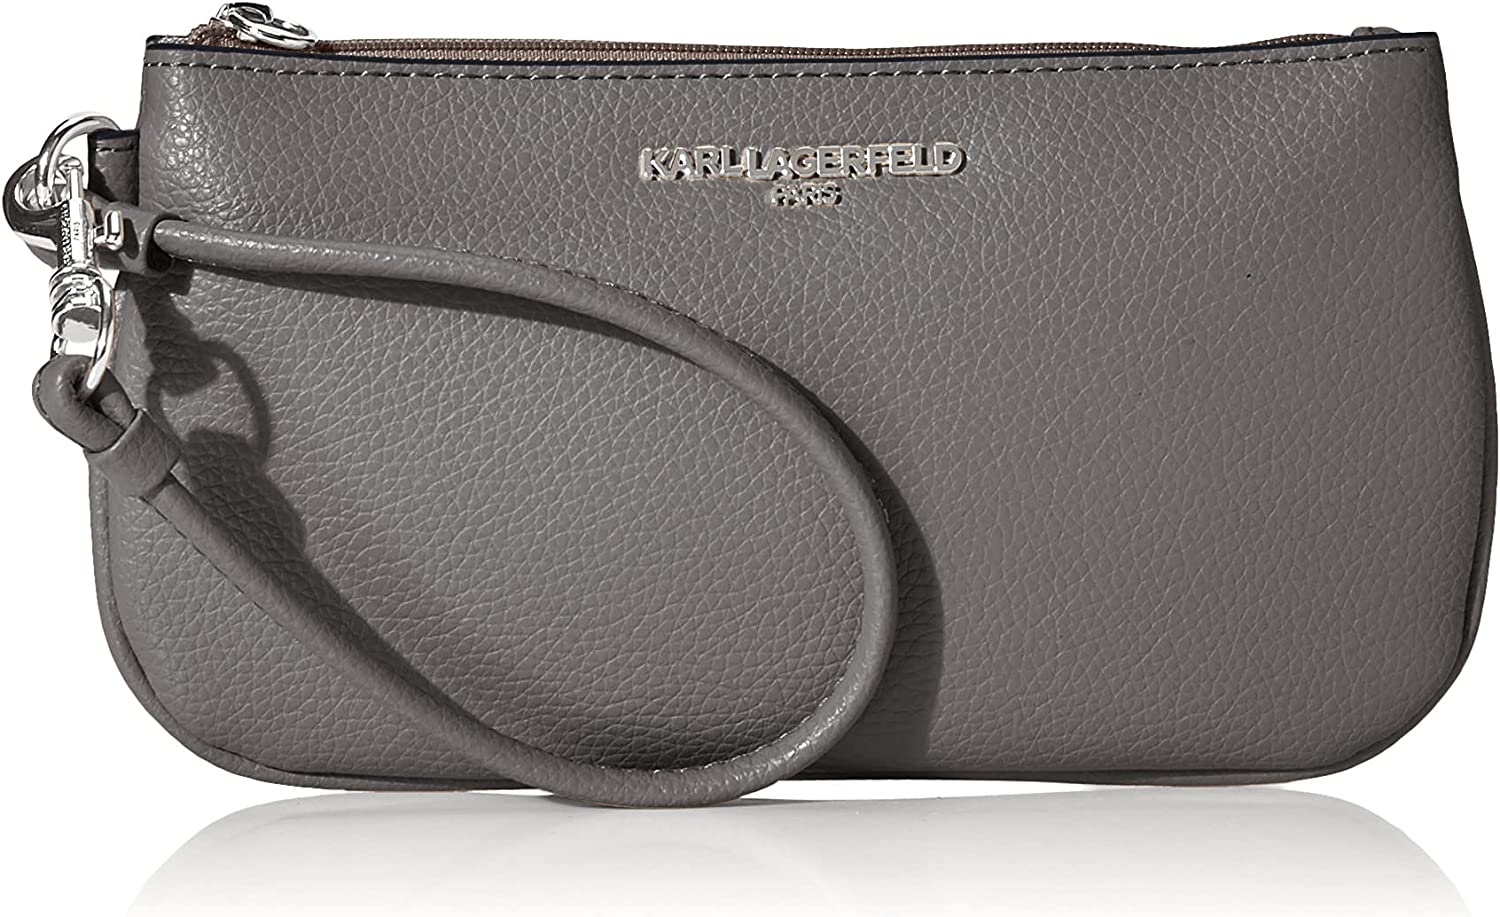 Karl specialty shop Lagerfeld High quality new Paris Wristlet Small Hermine